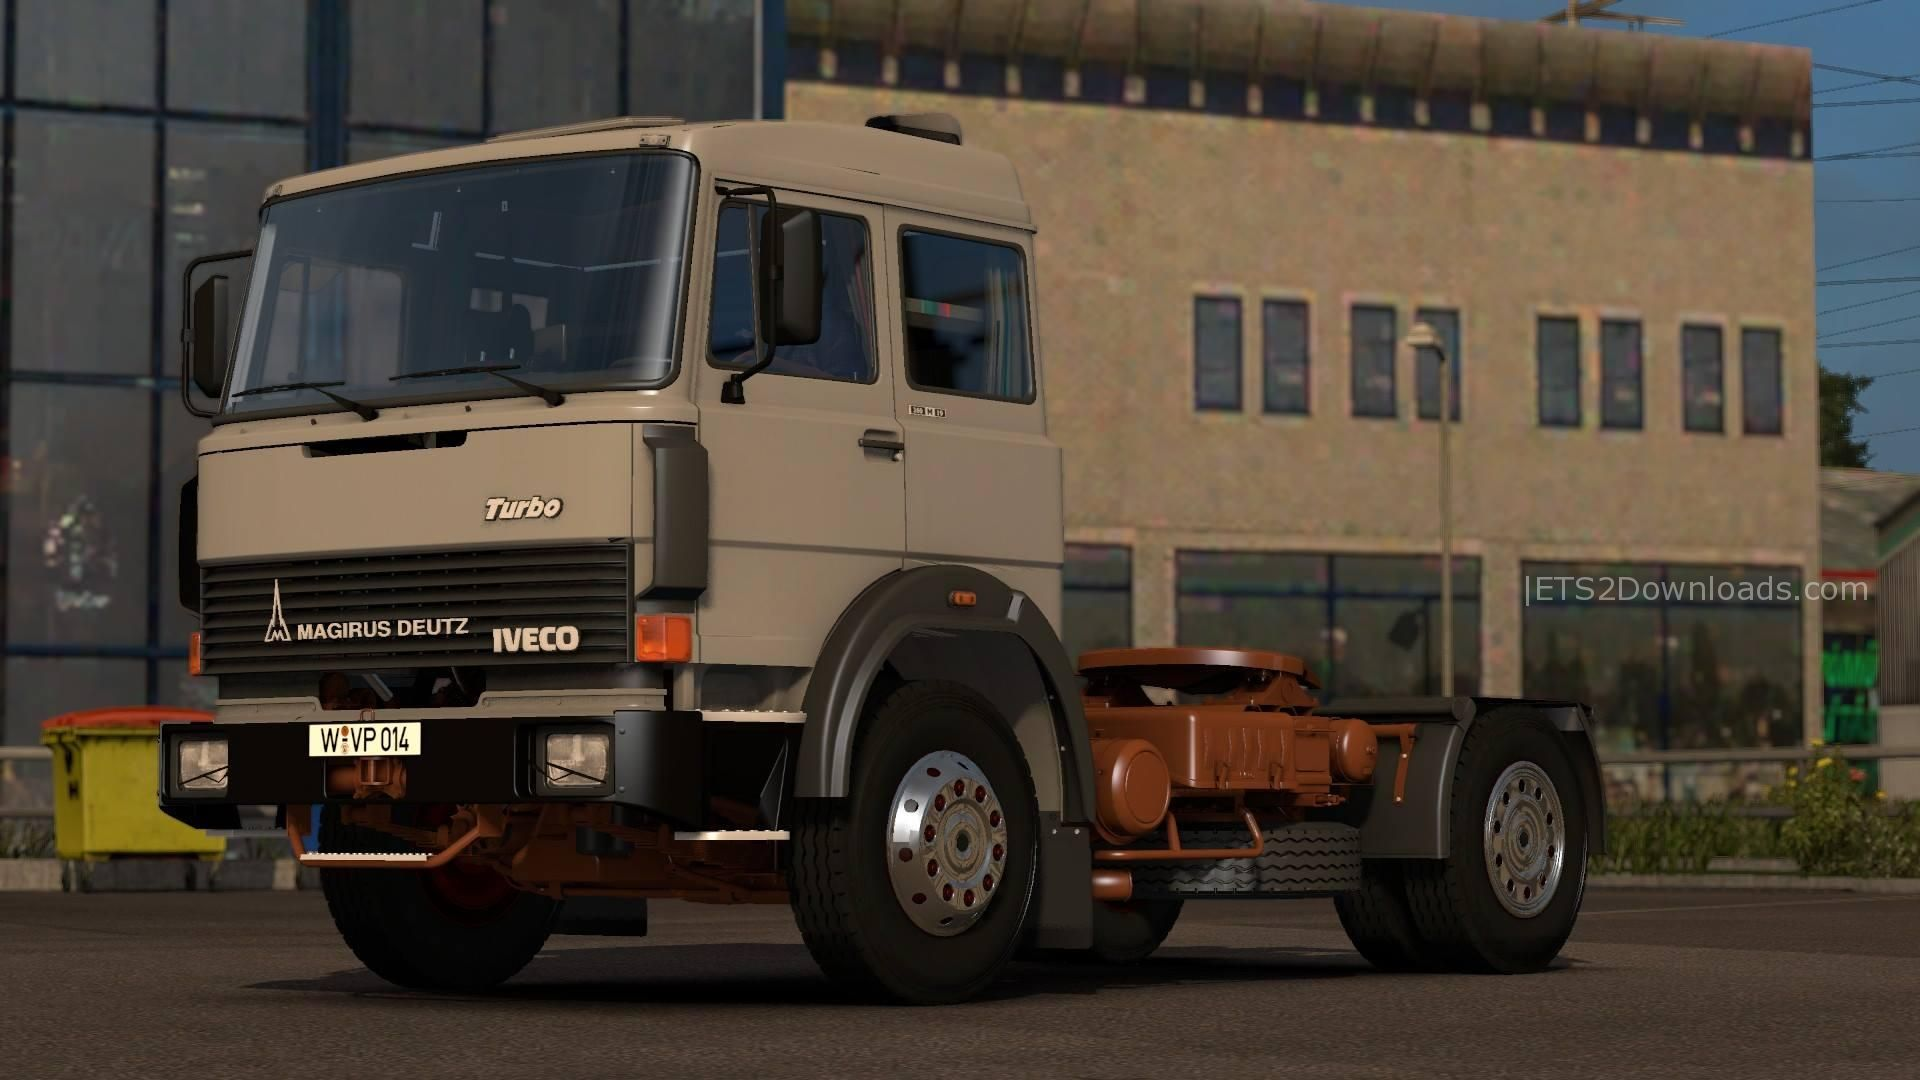 magirus deutz iveco v1 0 ets 2 mods ets2downloads. Black Bedroom Furniture Sets. Home Design Ideas